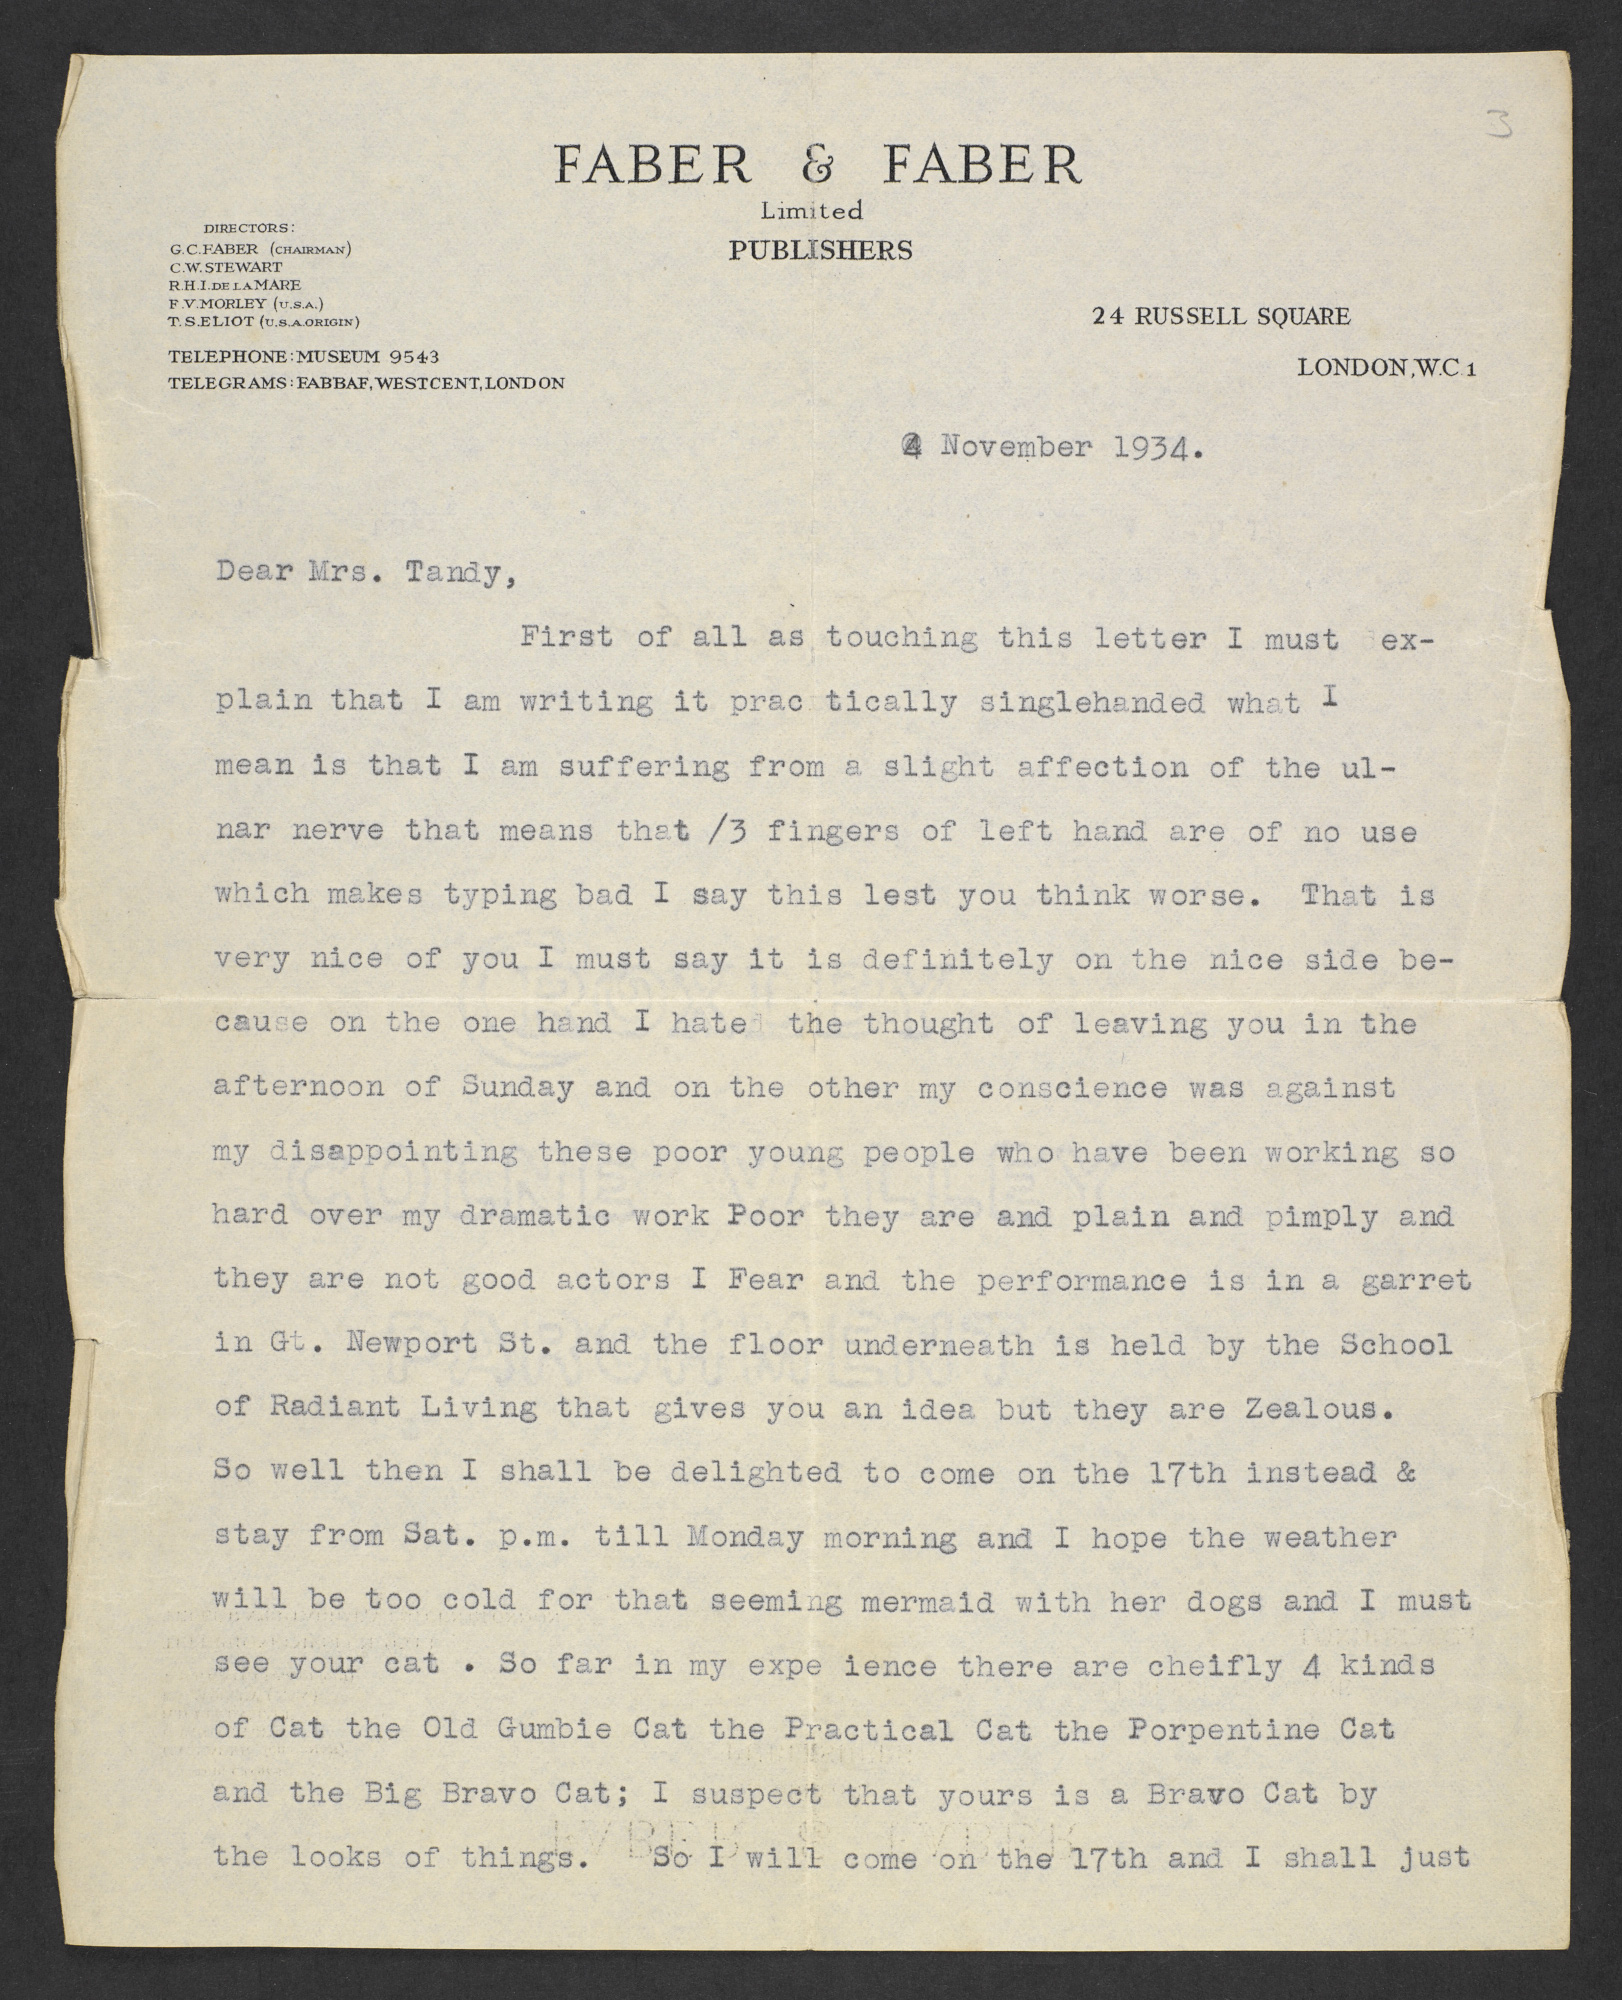 Letters from T S Eliot to the Tandy family, with drafts of his cat poems